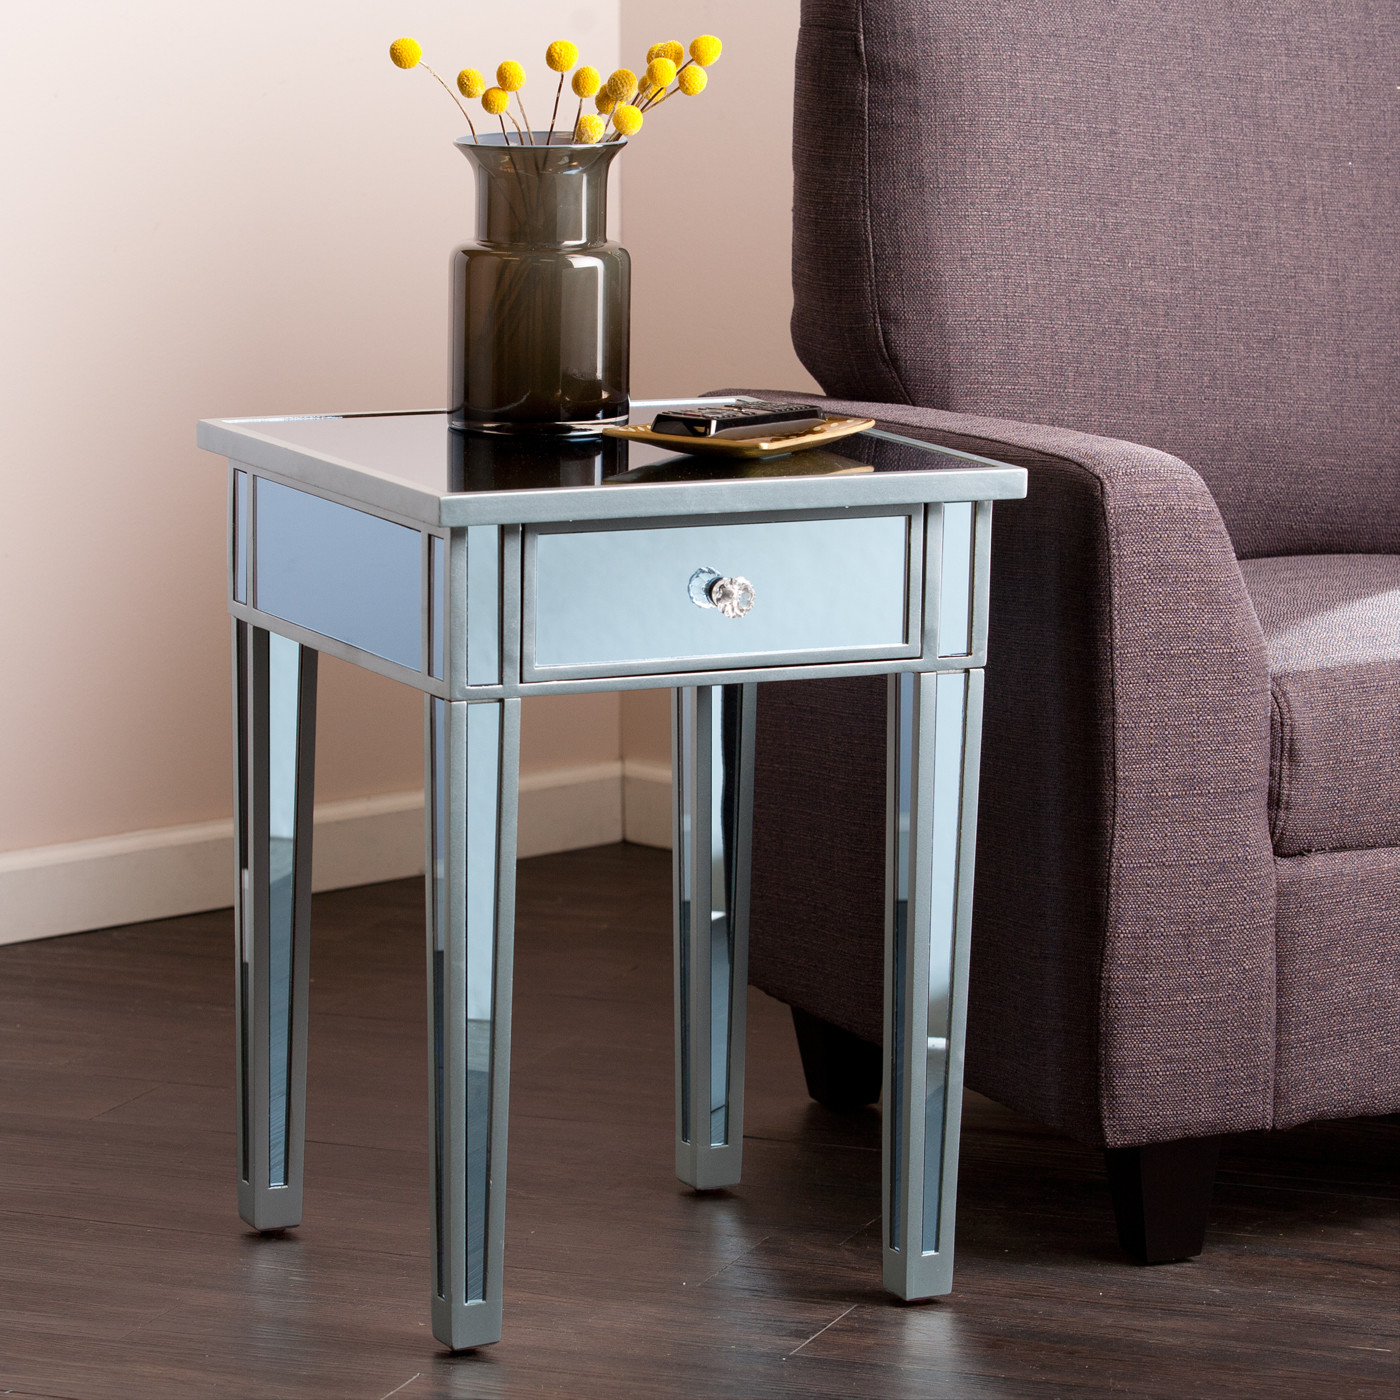 modern white bench tables accent cabinet for and round room living table tall kijiji ott outdoor glass storage gold antique decorative target threshold furniture vintage finish